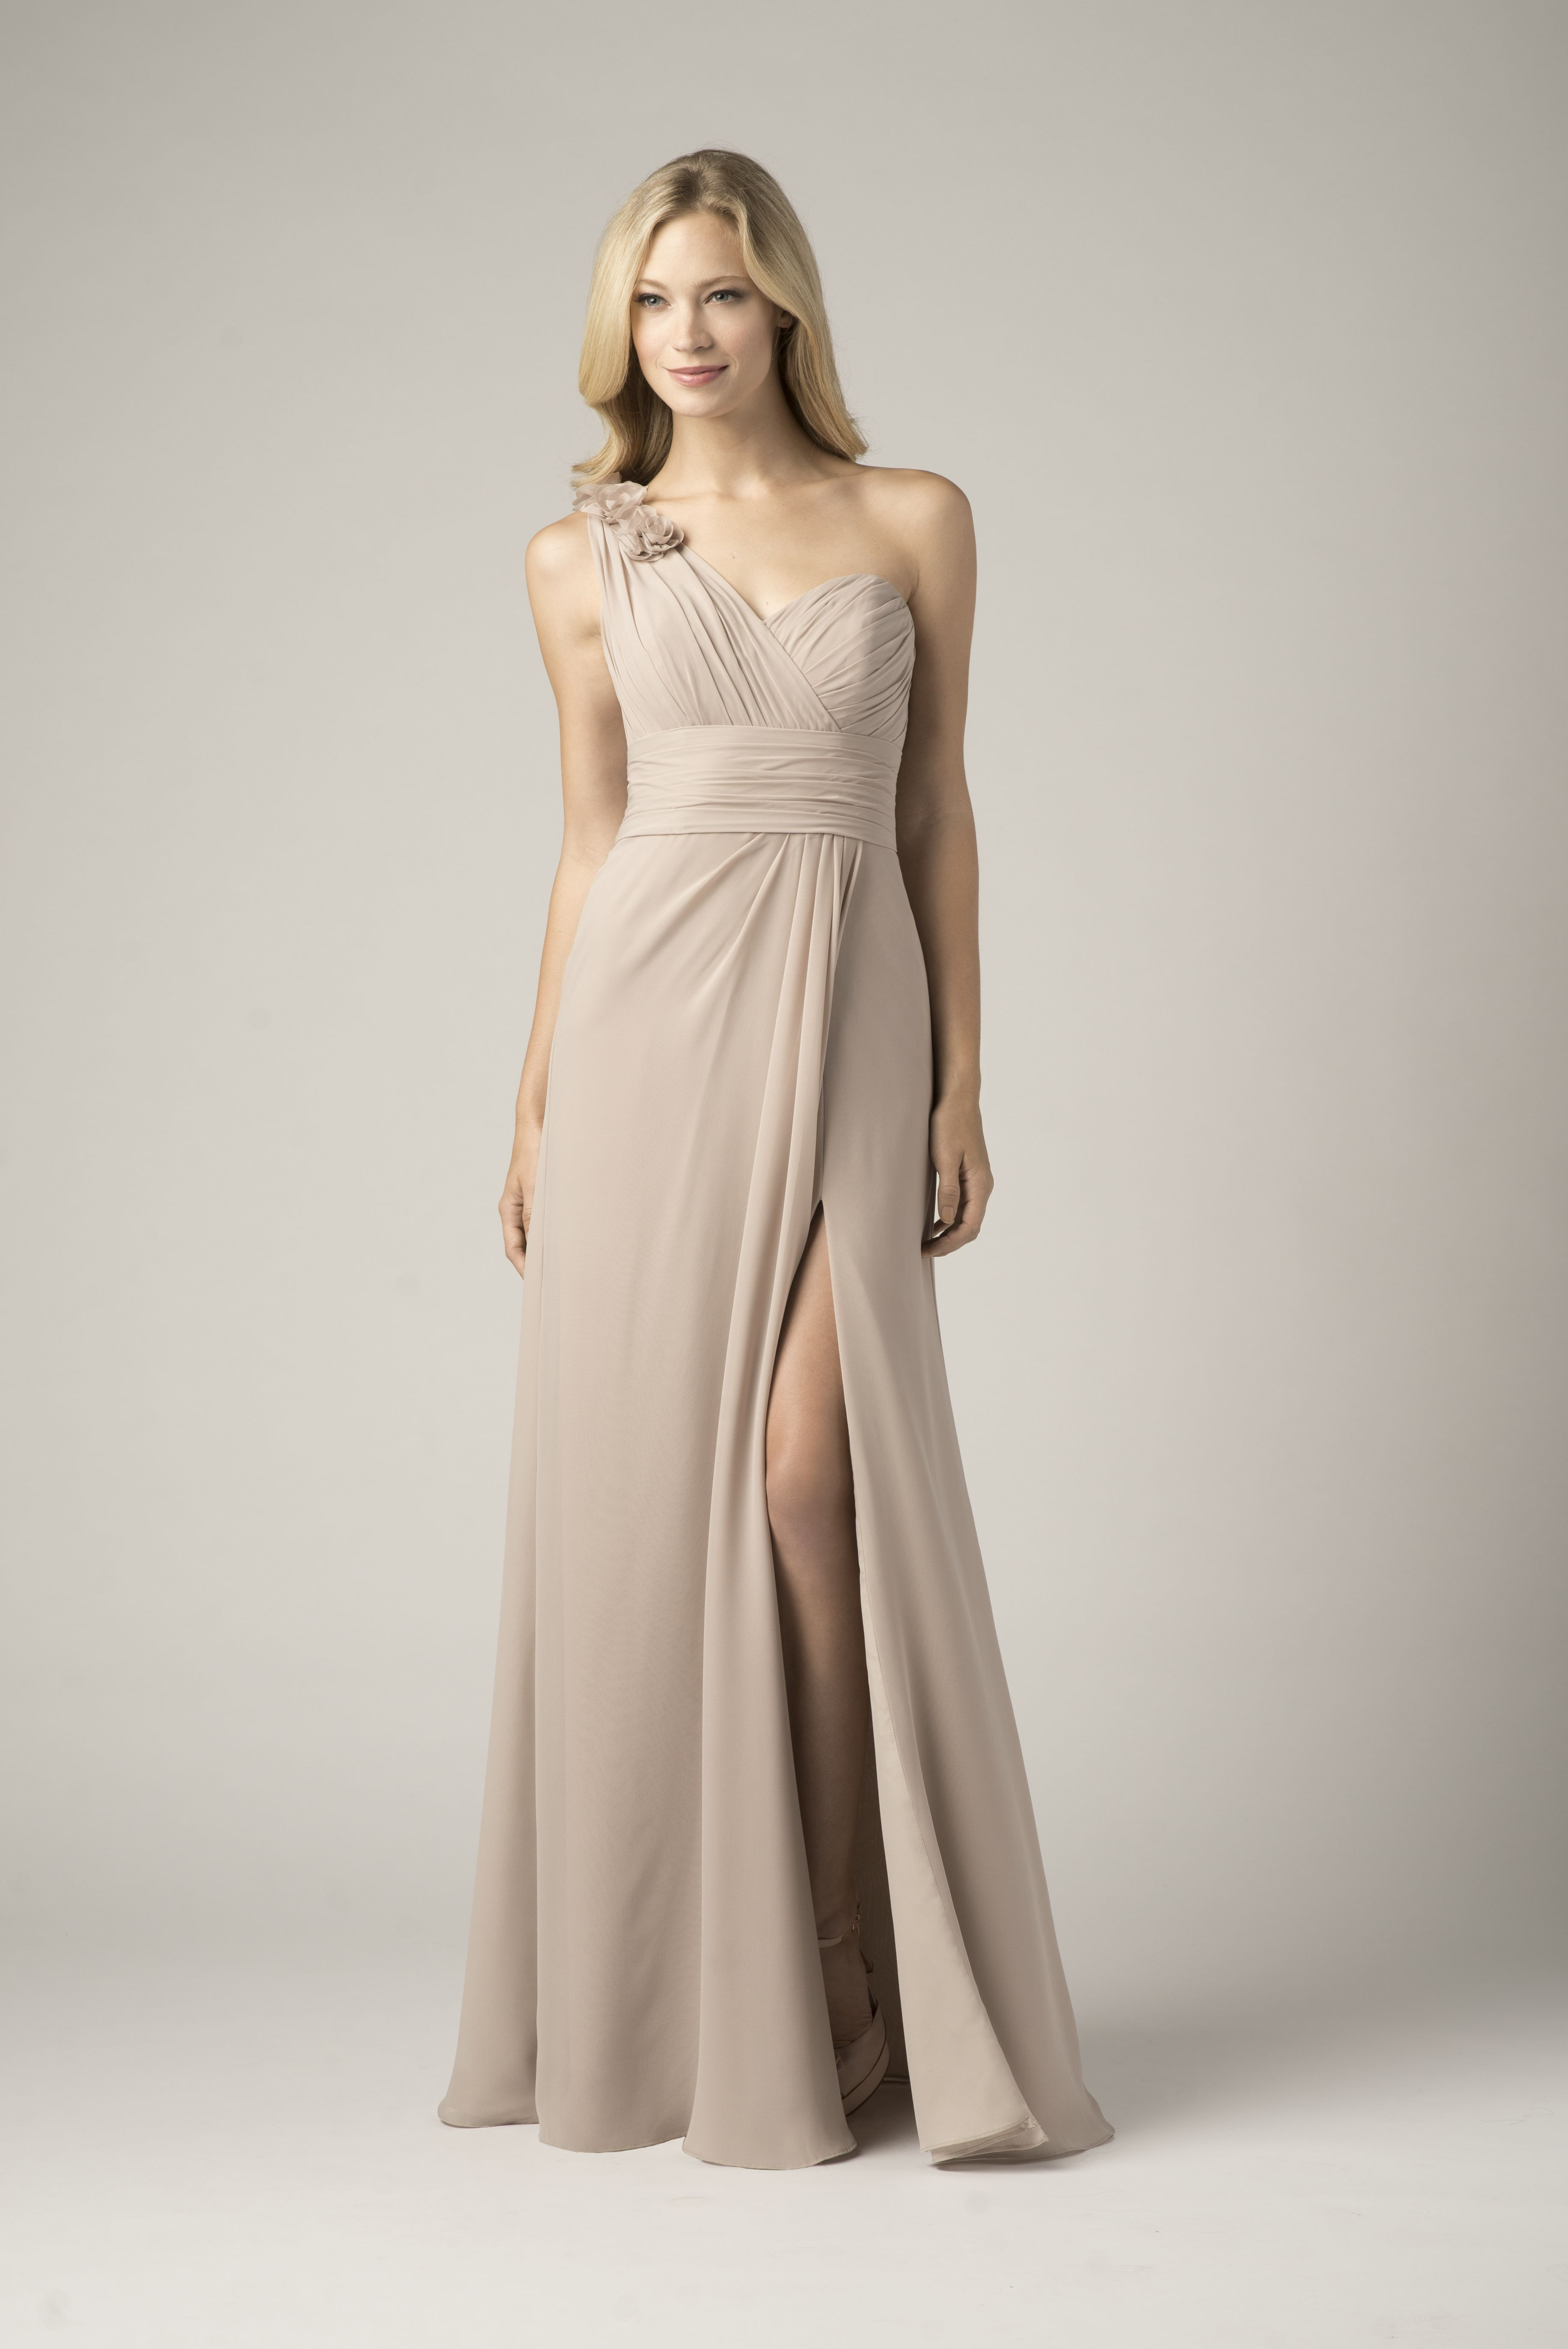 Wtoo Bridesmaid 802 In Mocha Floor Length Chiffon Bridesmaid Dresses Bridesmaid Dresses Long Bridesmaid Dresses